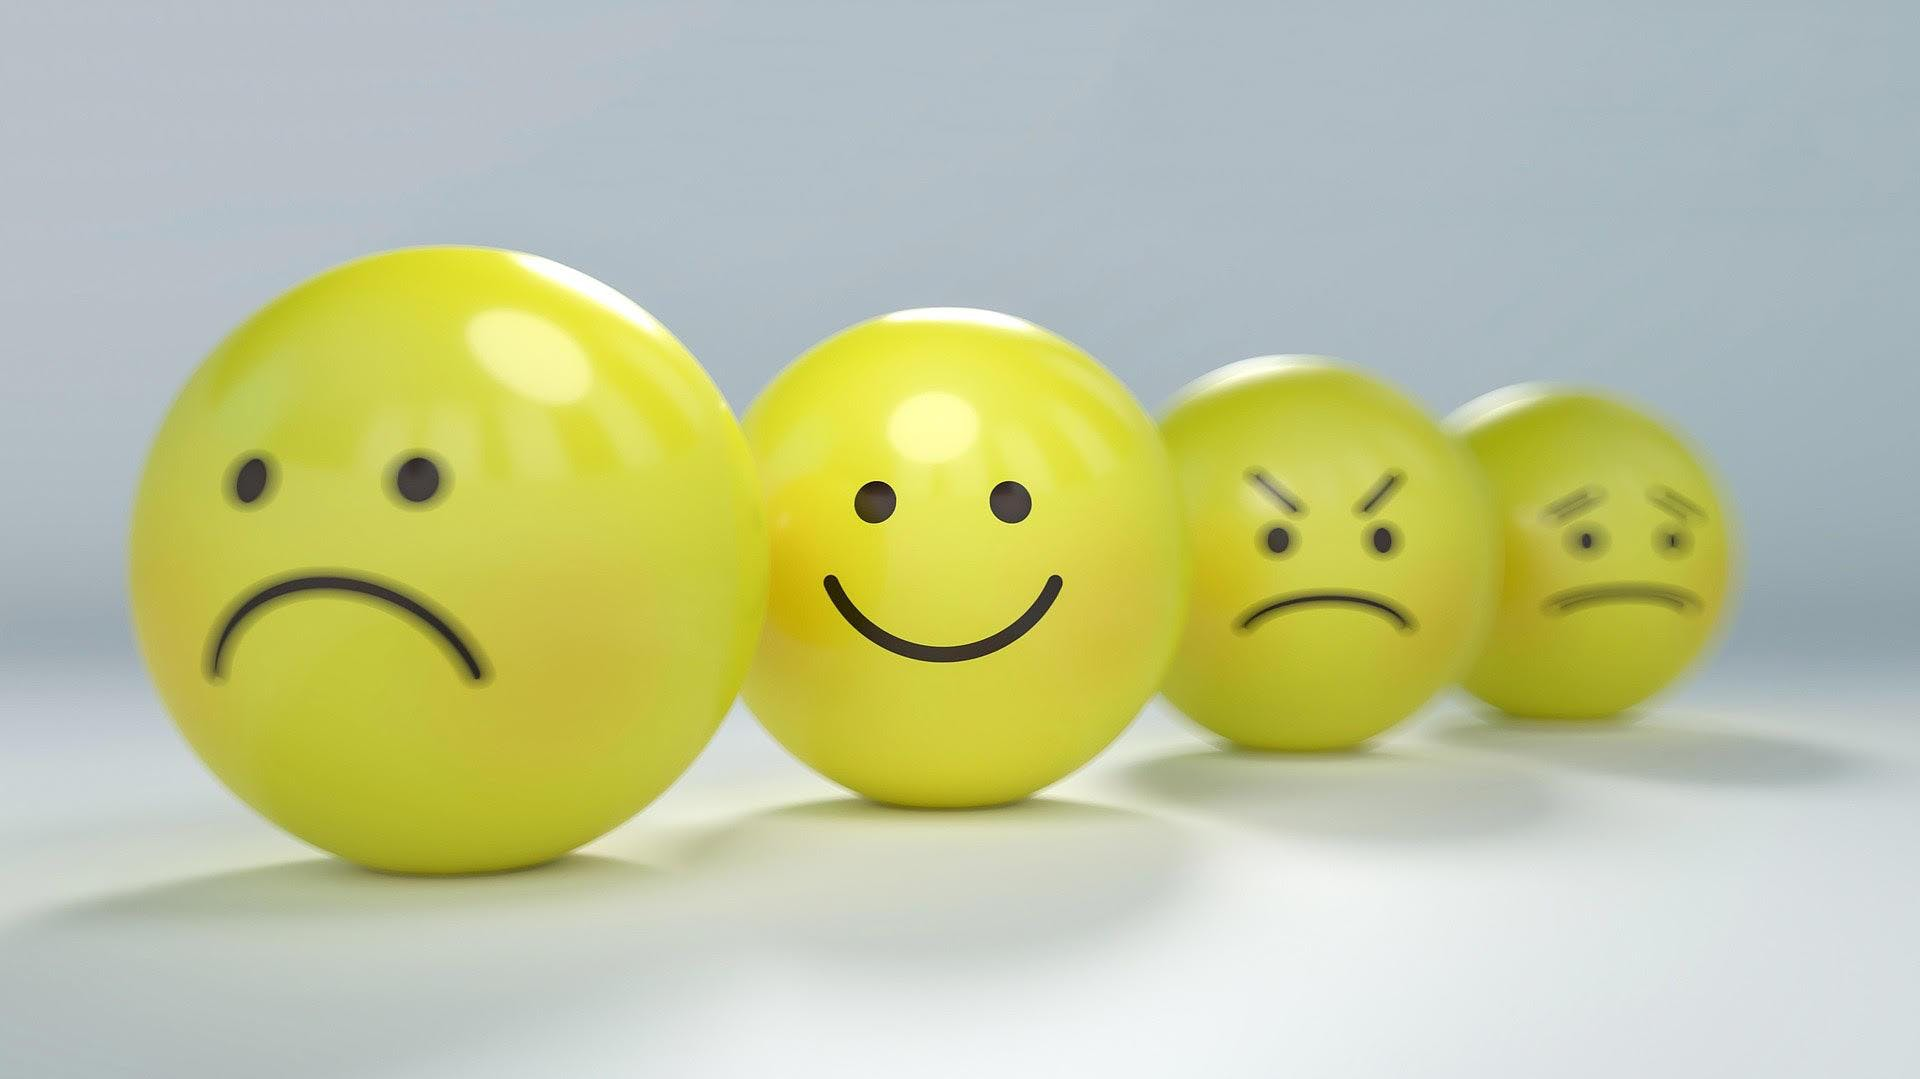 Transforming Difficult Emotions